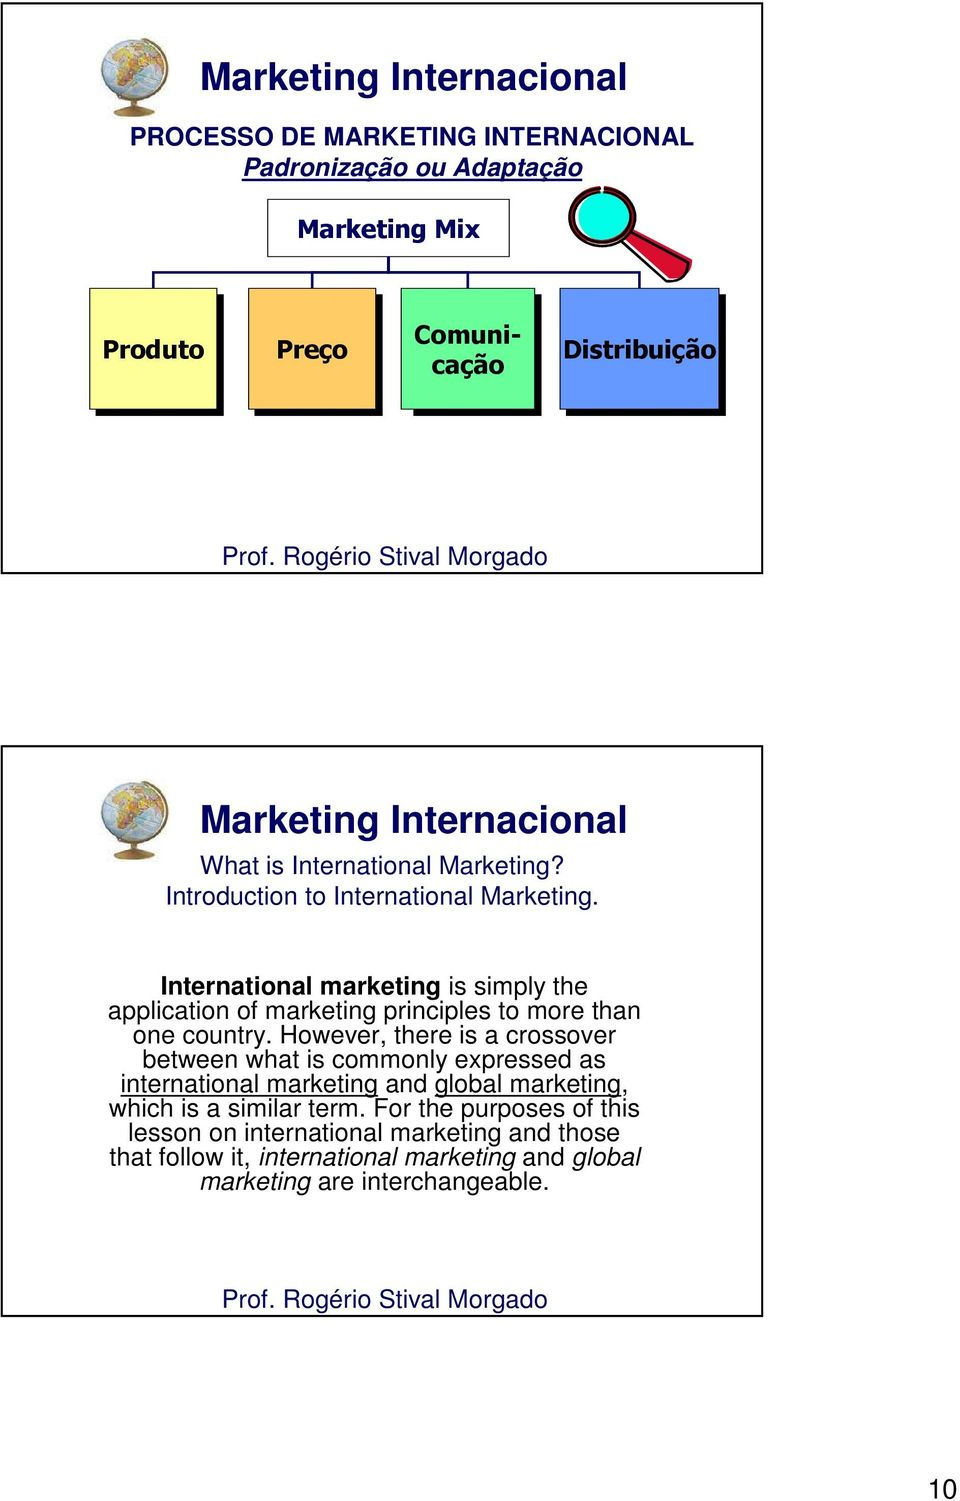 International marketing is simply the application of marketing principles to more than one country.